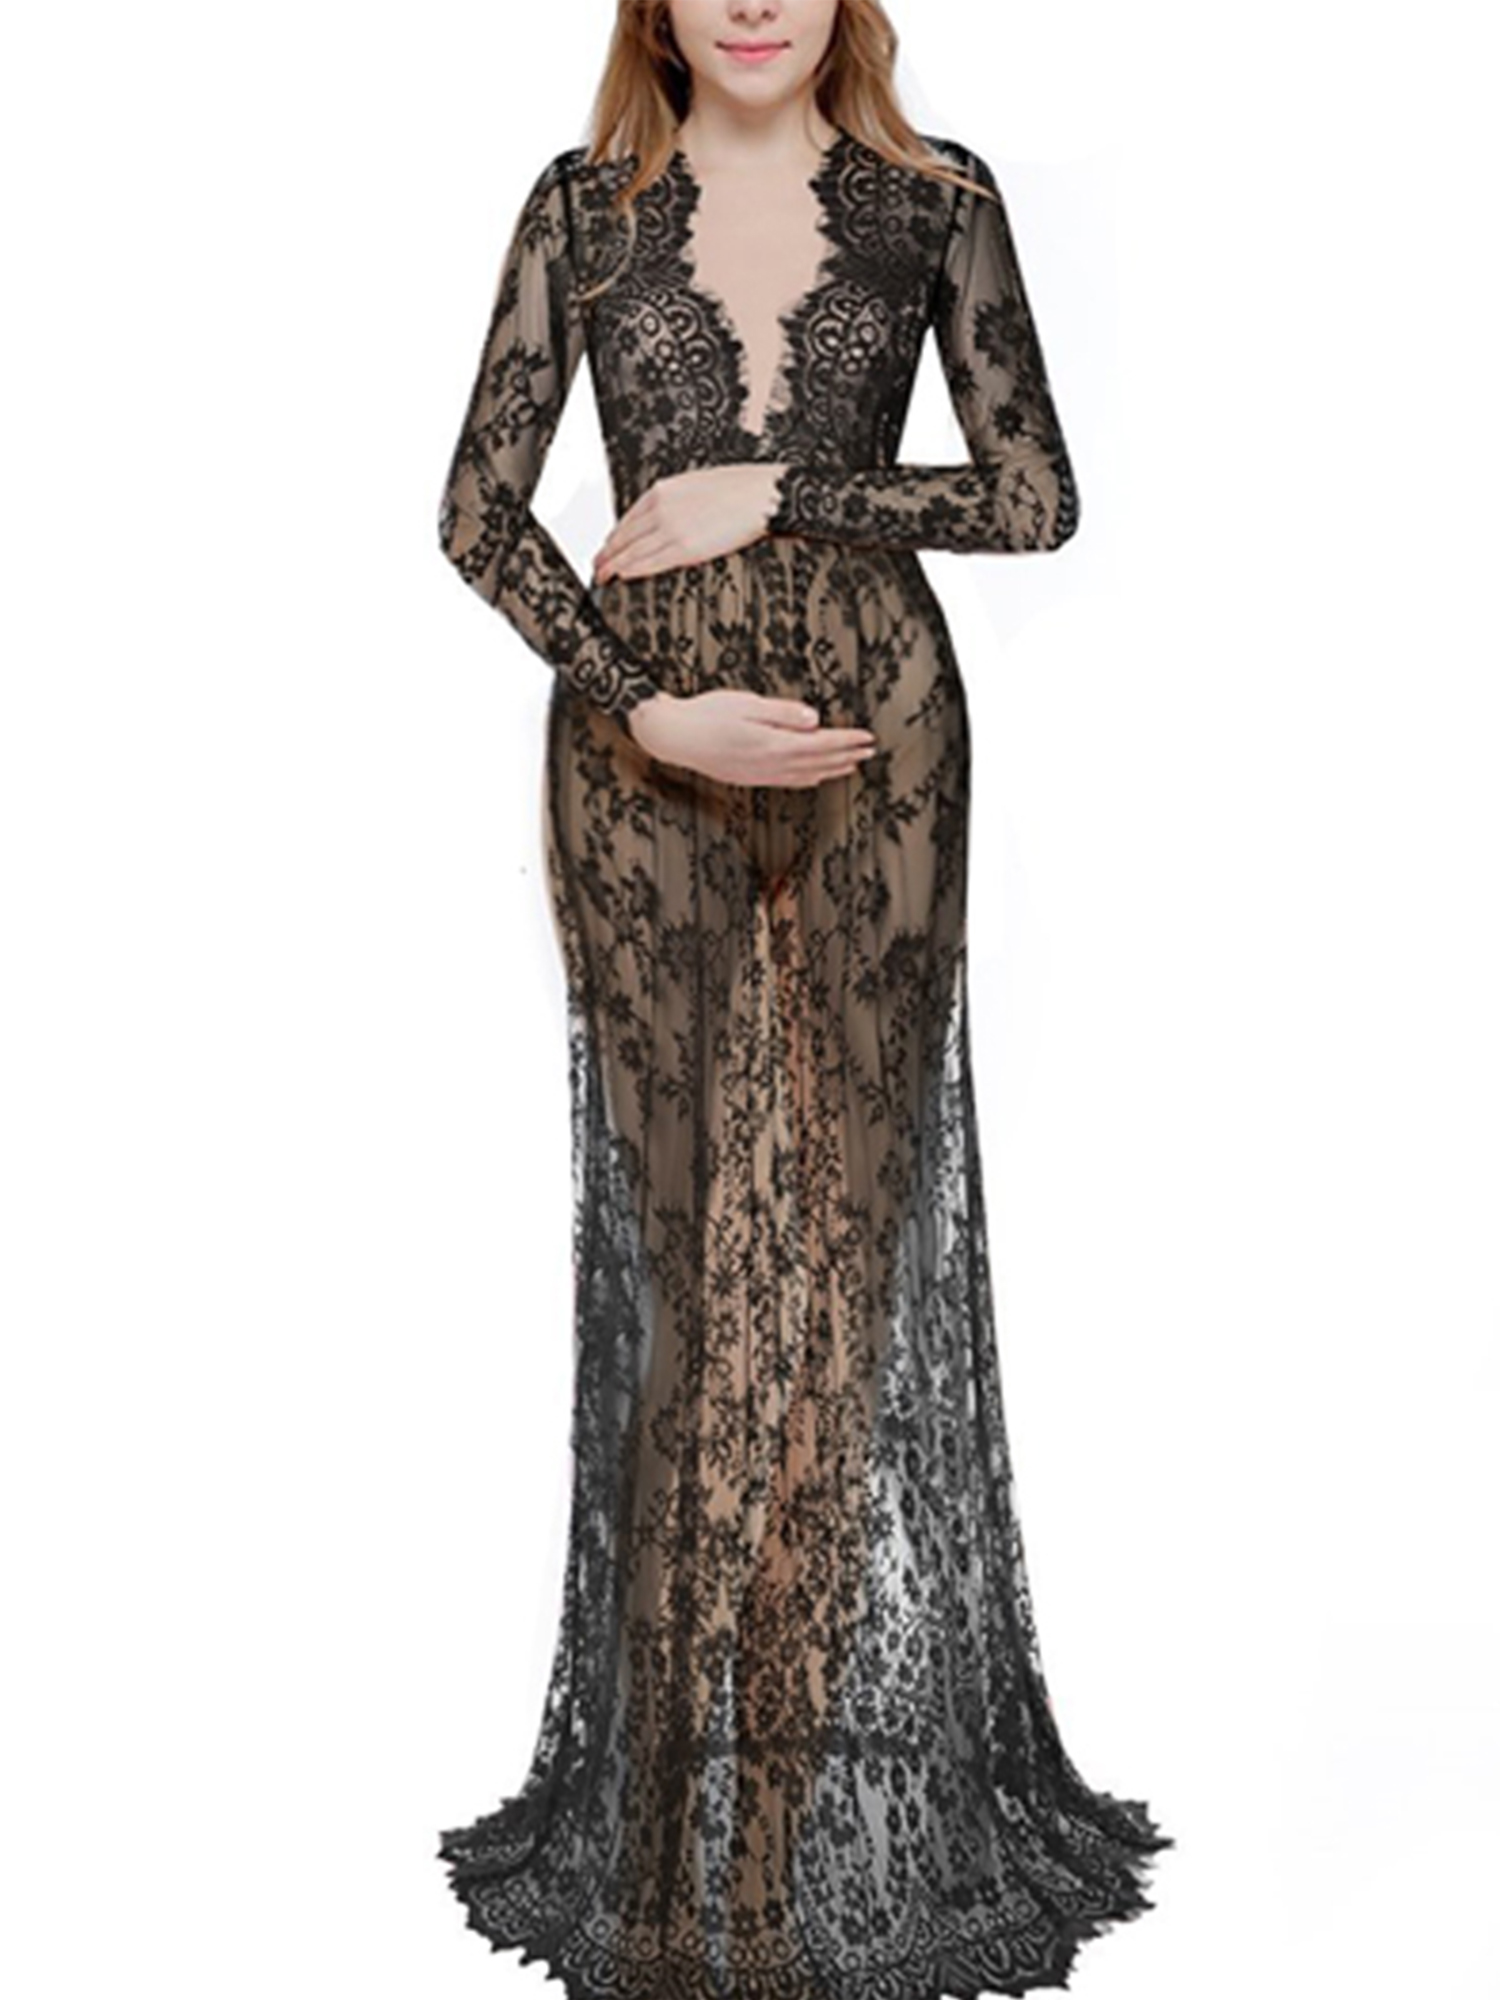 WODSTYLE LLC - Women Plus Size Lace Sheer Maternity Gown Maxi Dress -  Walmart.com